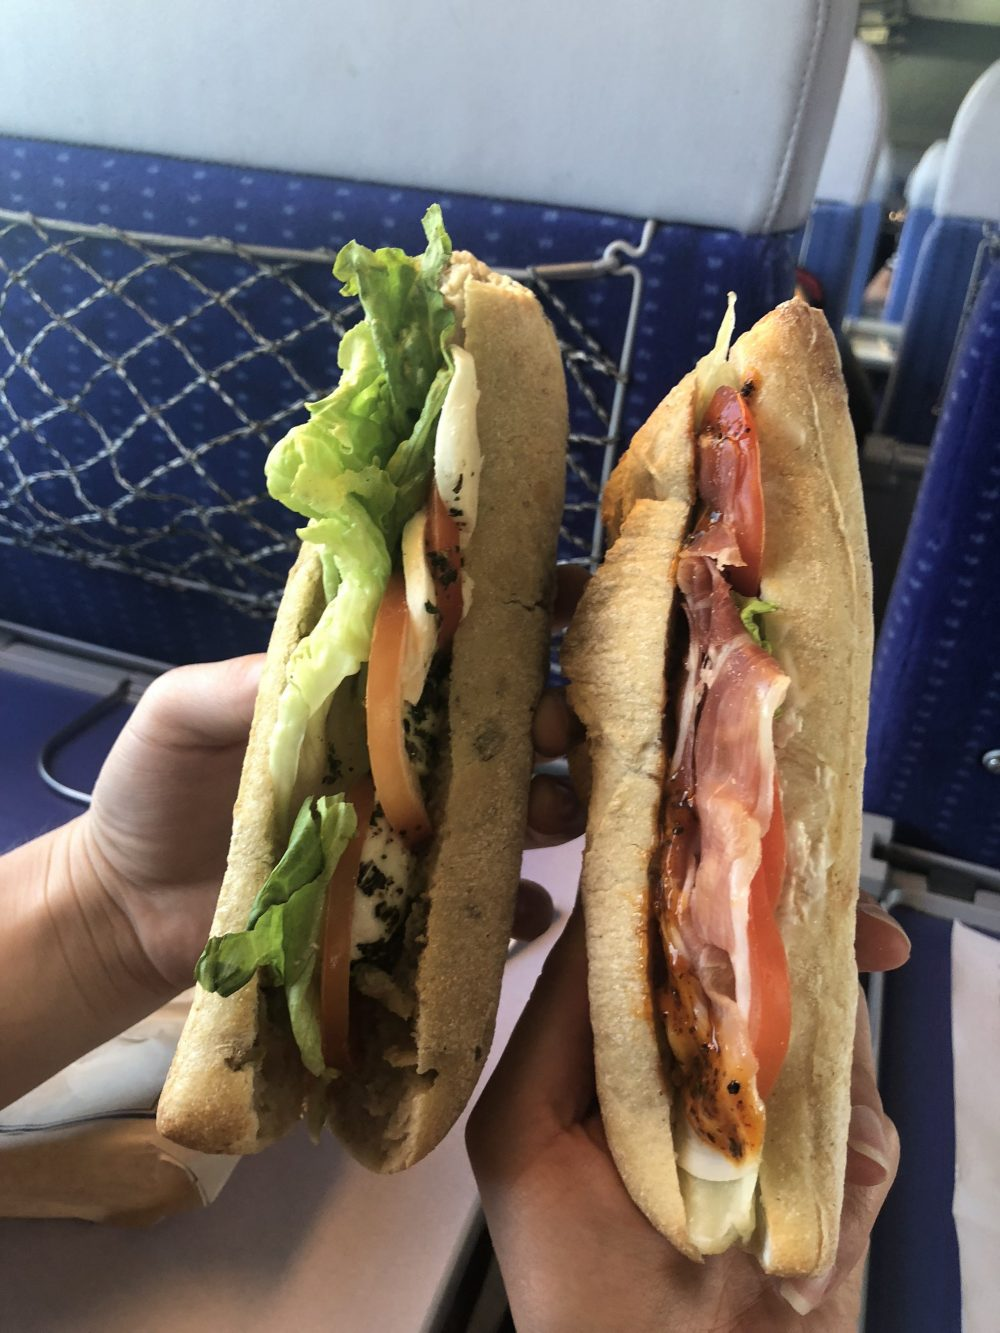 hands holding two sandwiches on a train